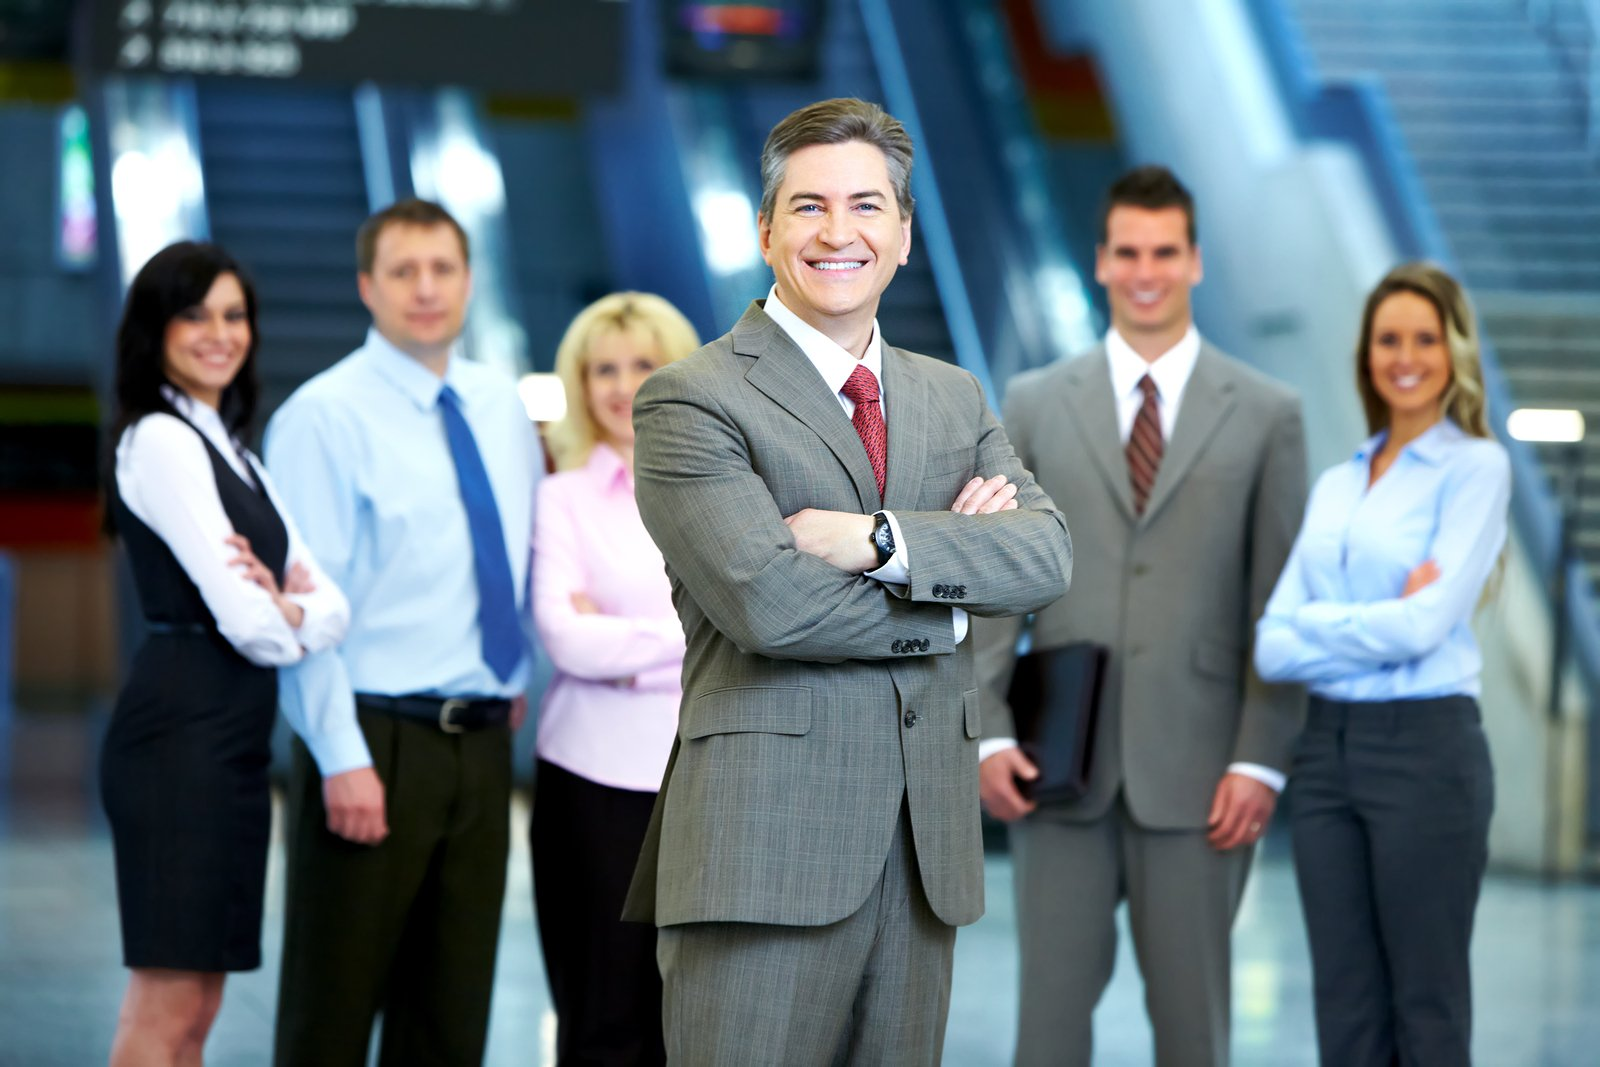 image of a group of business people in a modern hall